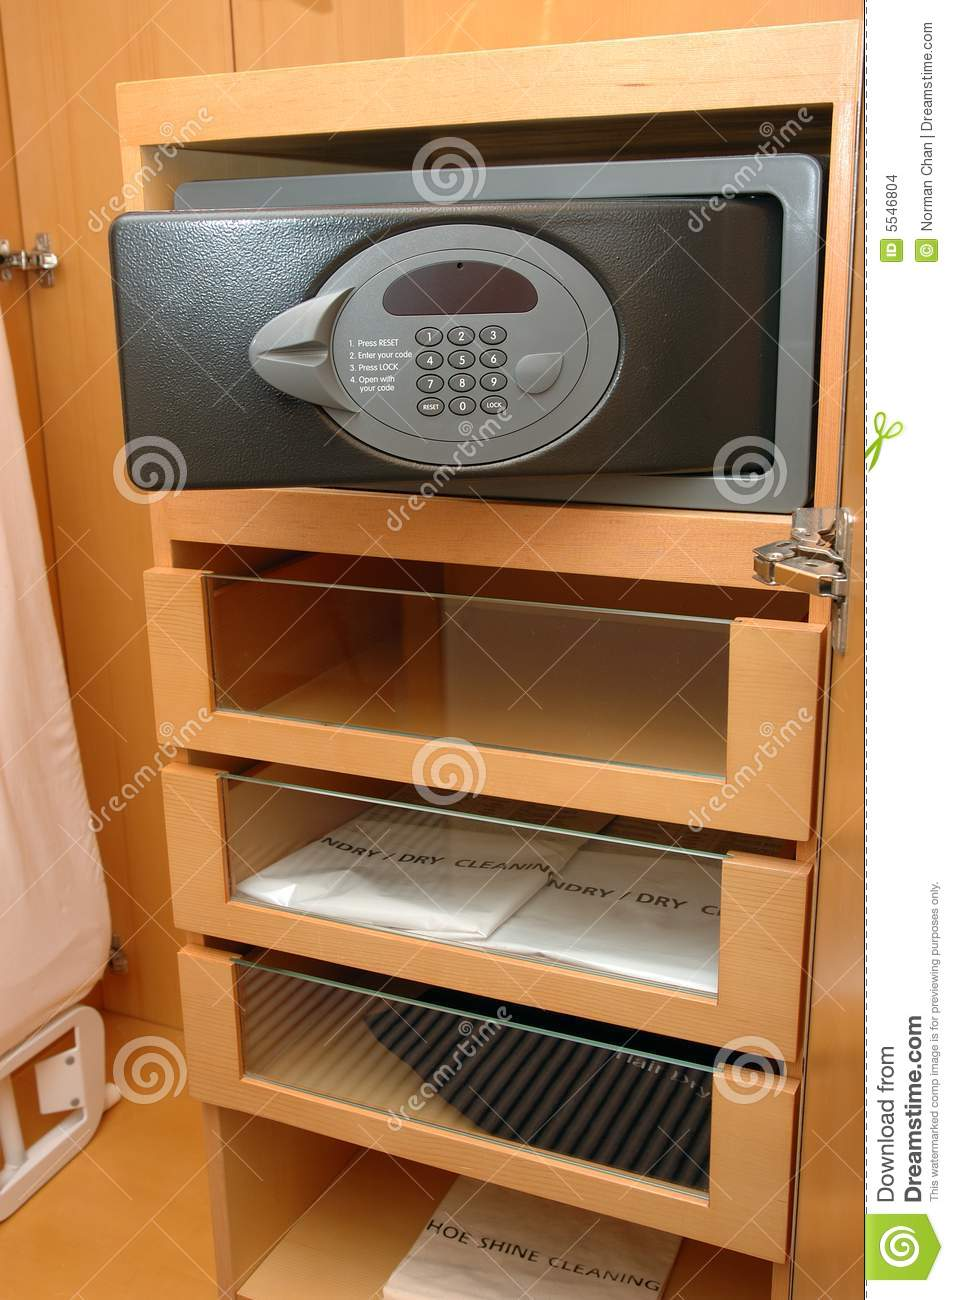 Safe box in closet stock photo  Image of safe, number - 5546804